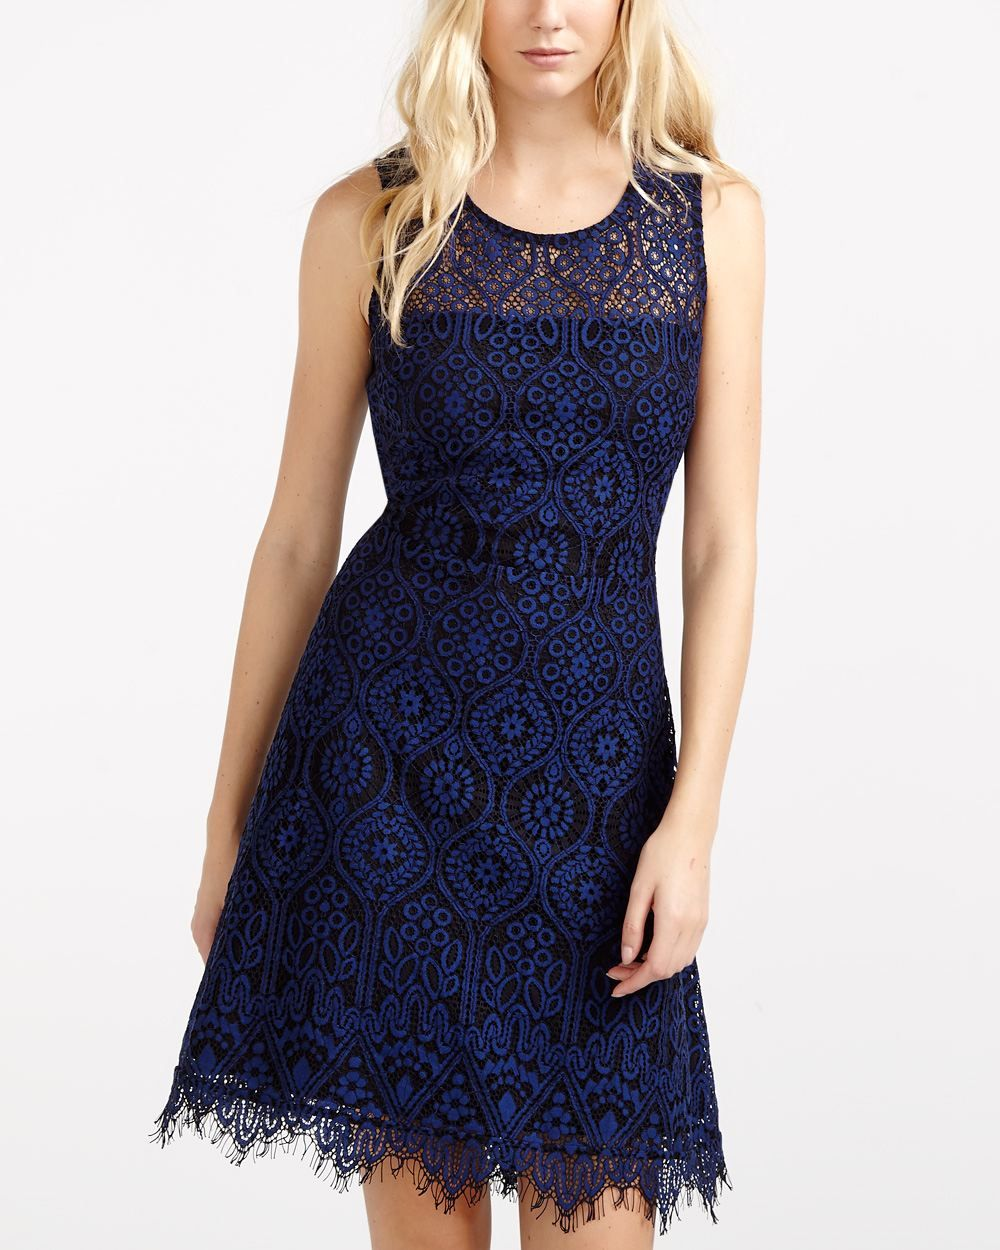 Want to wow on your office holiday party? This Sleeveless Lace Dress makes it hard to wear anything else! This elegant piece features a crew neckline, a fitted top and a flared skirt. Pair it with your favourite high heels and show your groove on the dance floor.